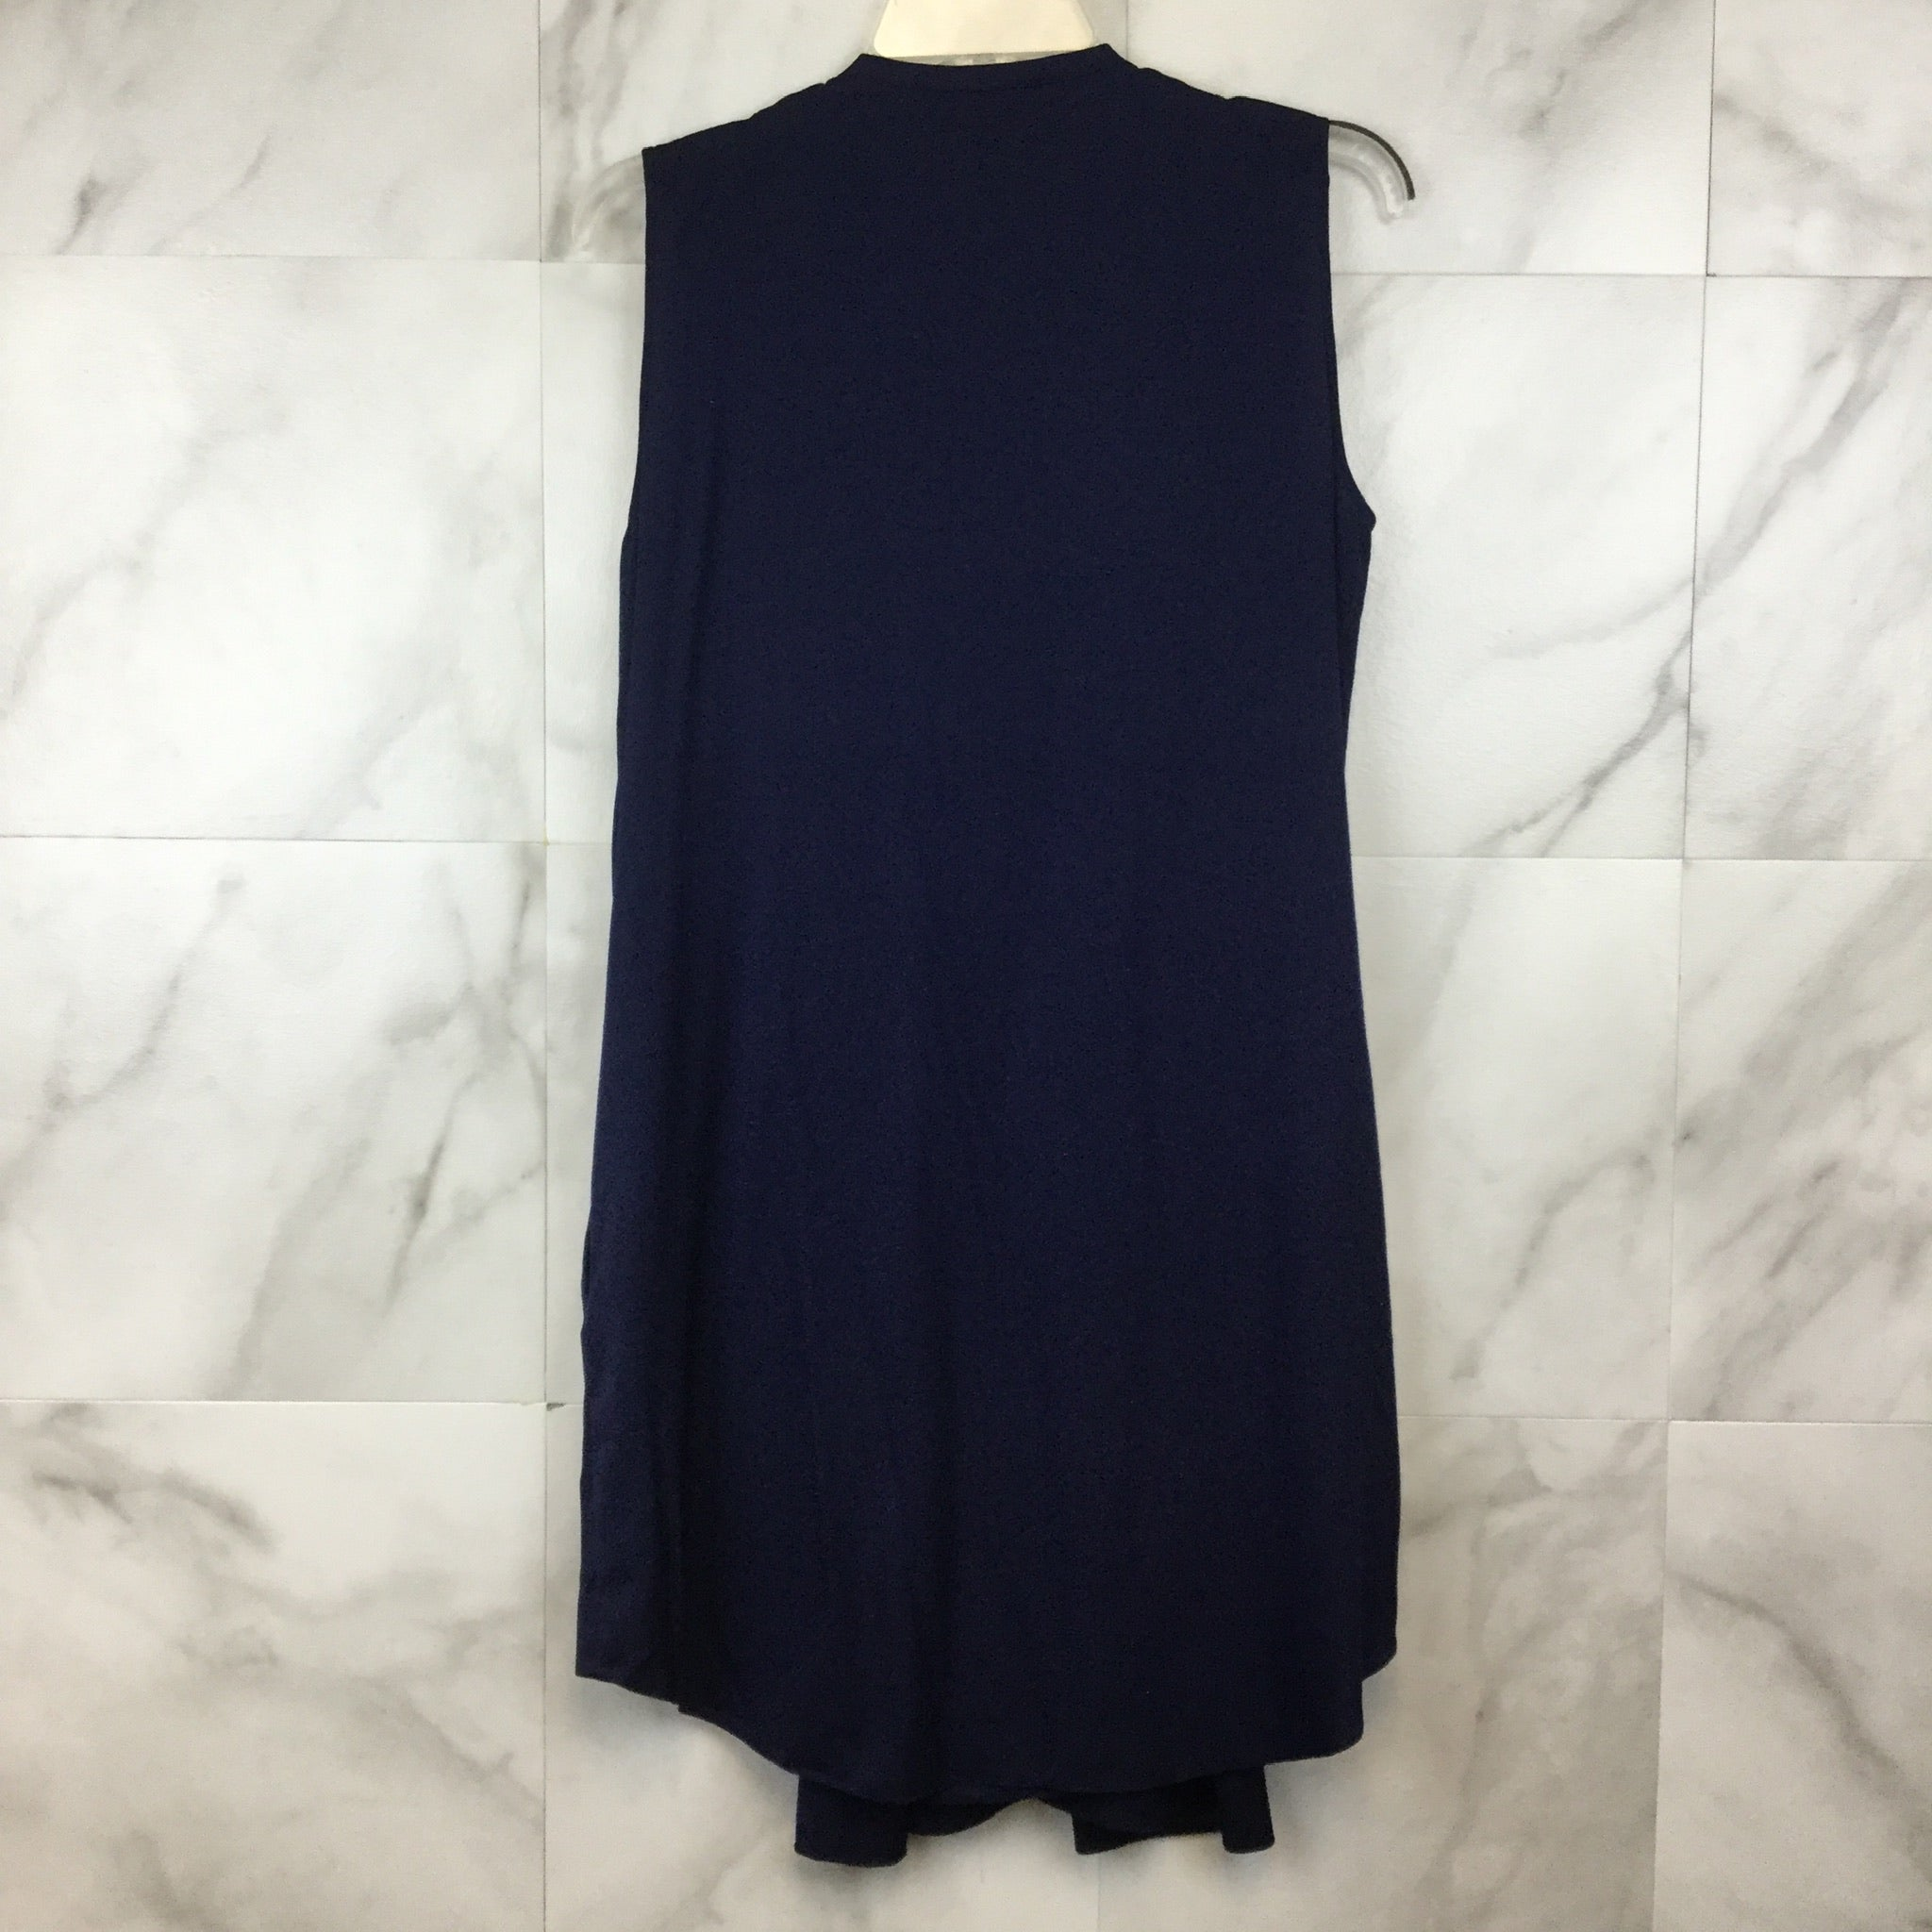 3.1 Phillip Lim Draped Shift Dress- size M